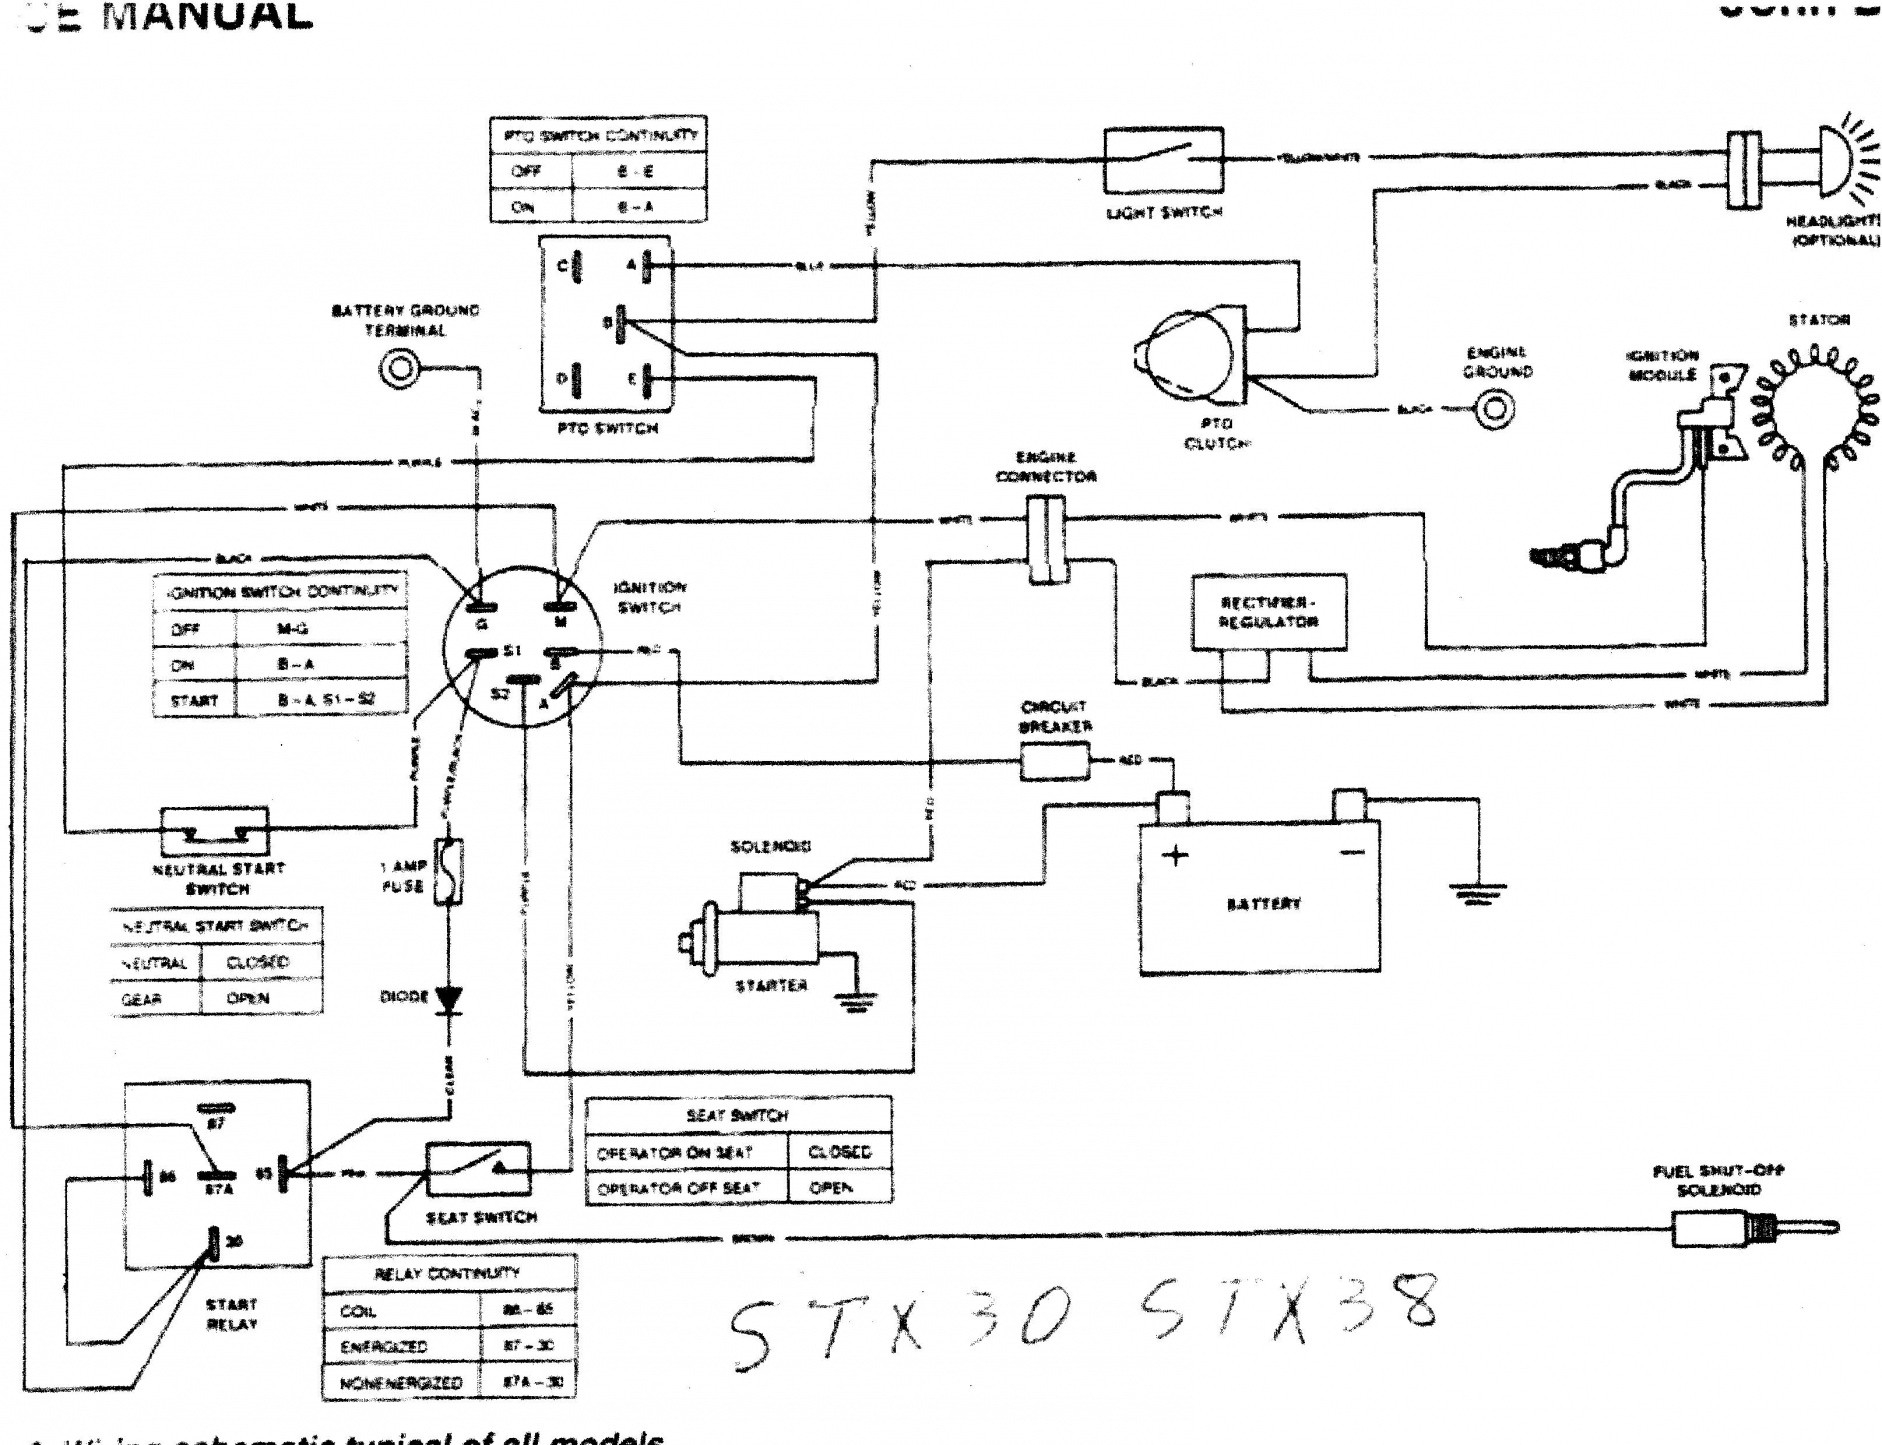 john deere stx38 wiring schematic Collection-john deere gator wiring diagram on wiring diagram john deere stx38 rh 45 76 62 56 4-o